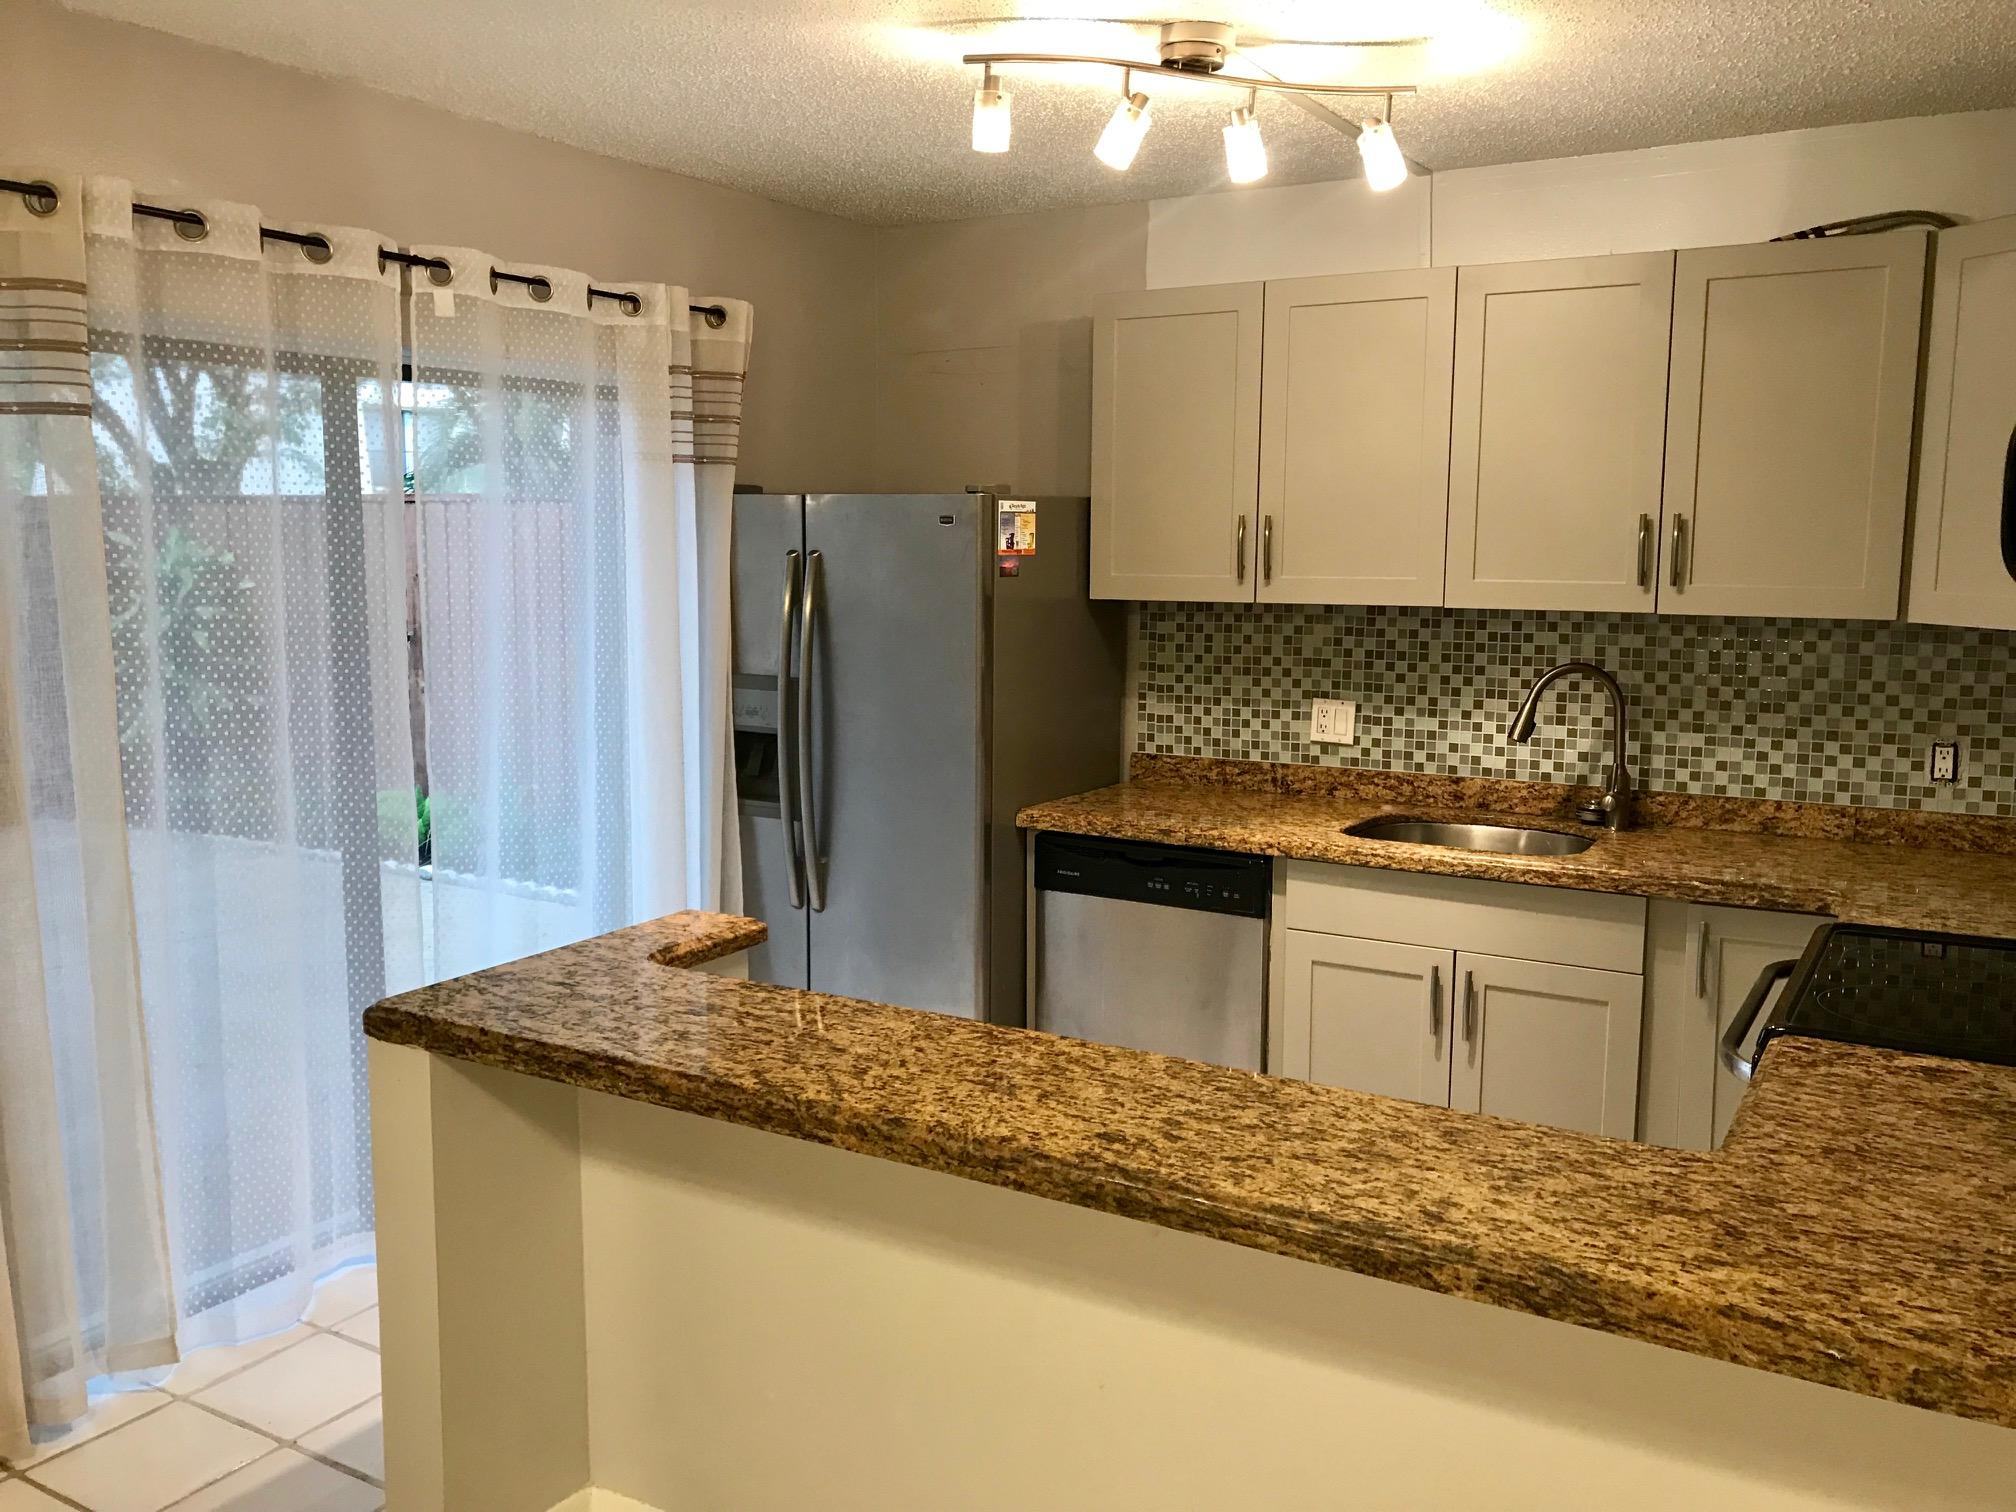 1700 Embassy Drive, West Palm Beach, Florida 33401, 3 Bedrooms Bedrooms, ,2 BathroomsBathrooms,Rental,For Rent,Embassy,RX-10564389